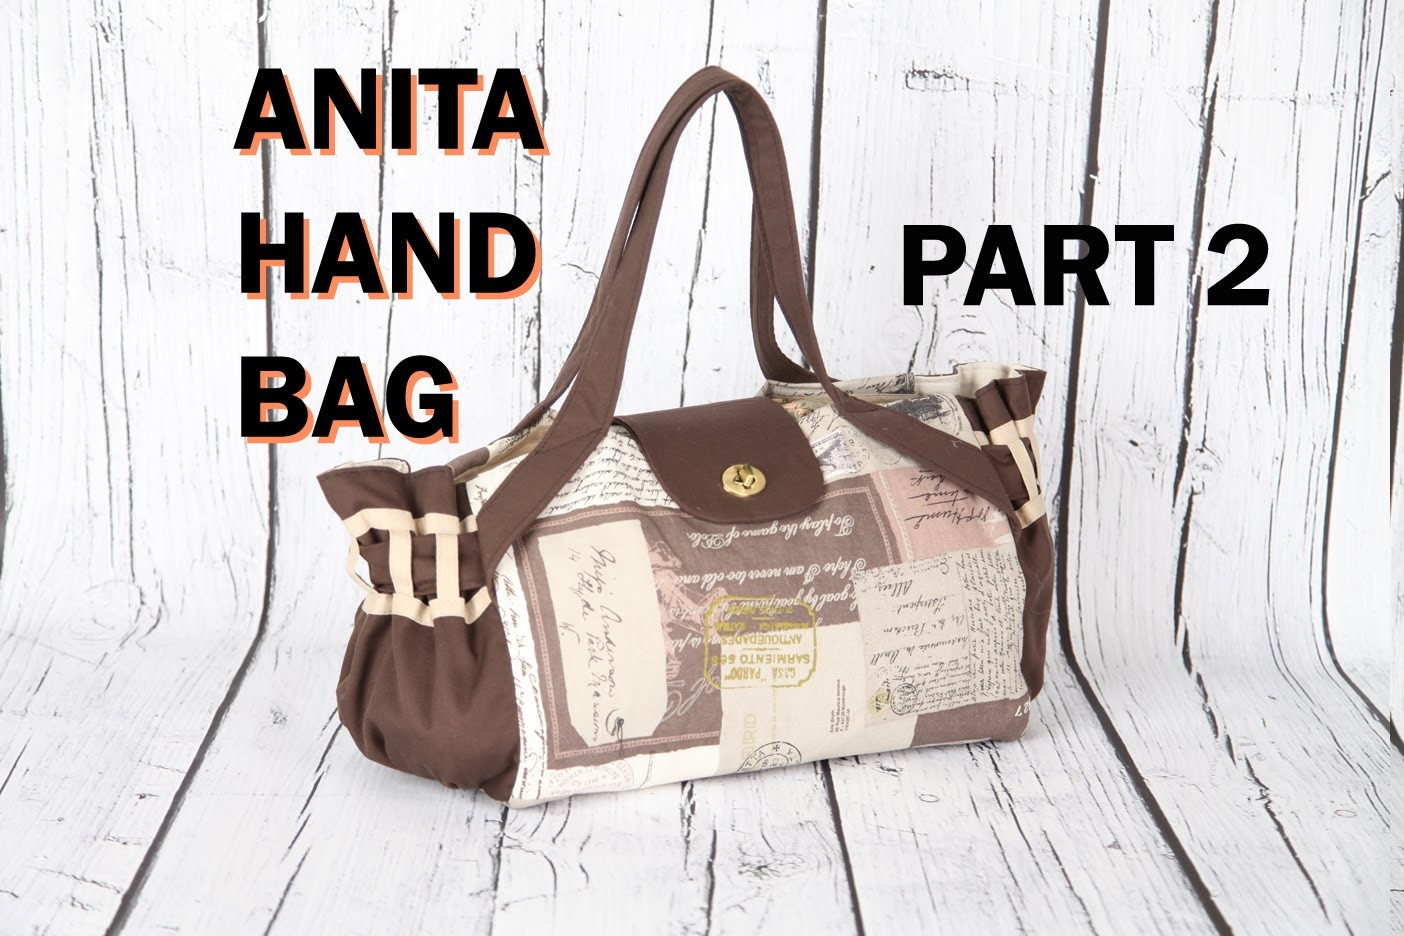 Anita 2 Pleated handbag, lined with magnetic button.DIY Bag Vol 21B